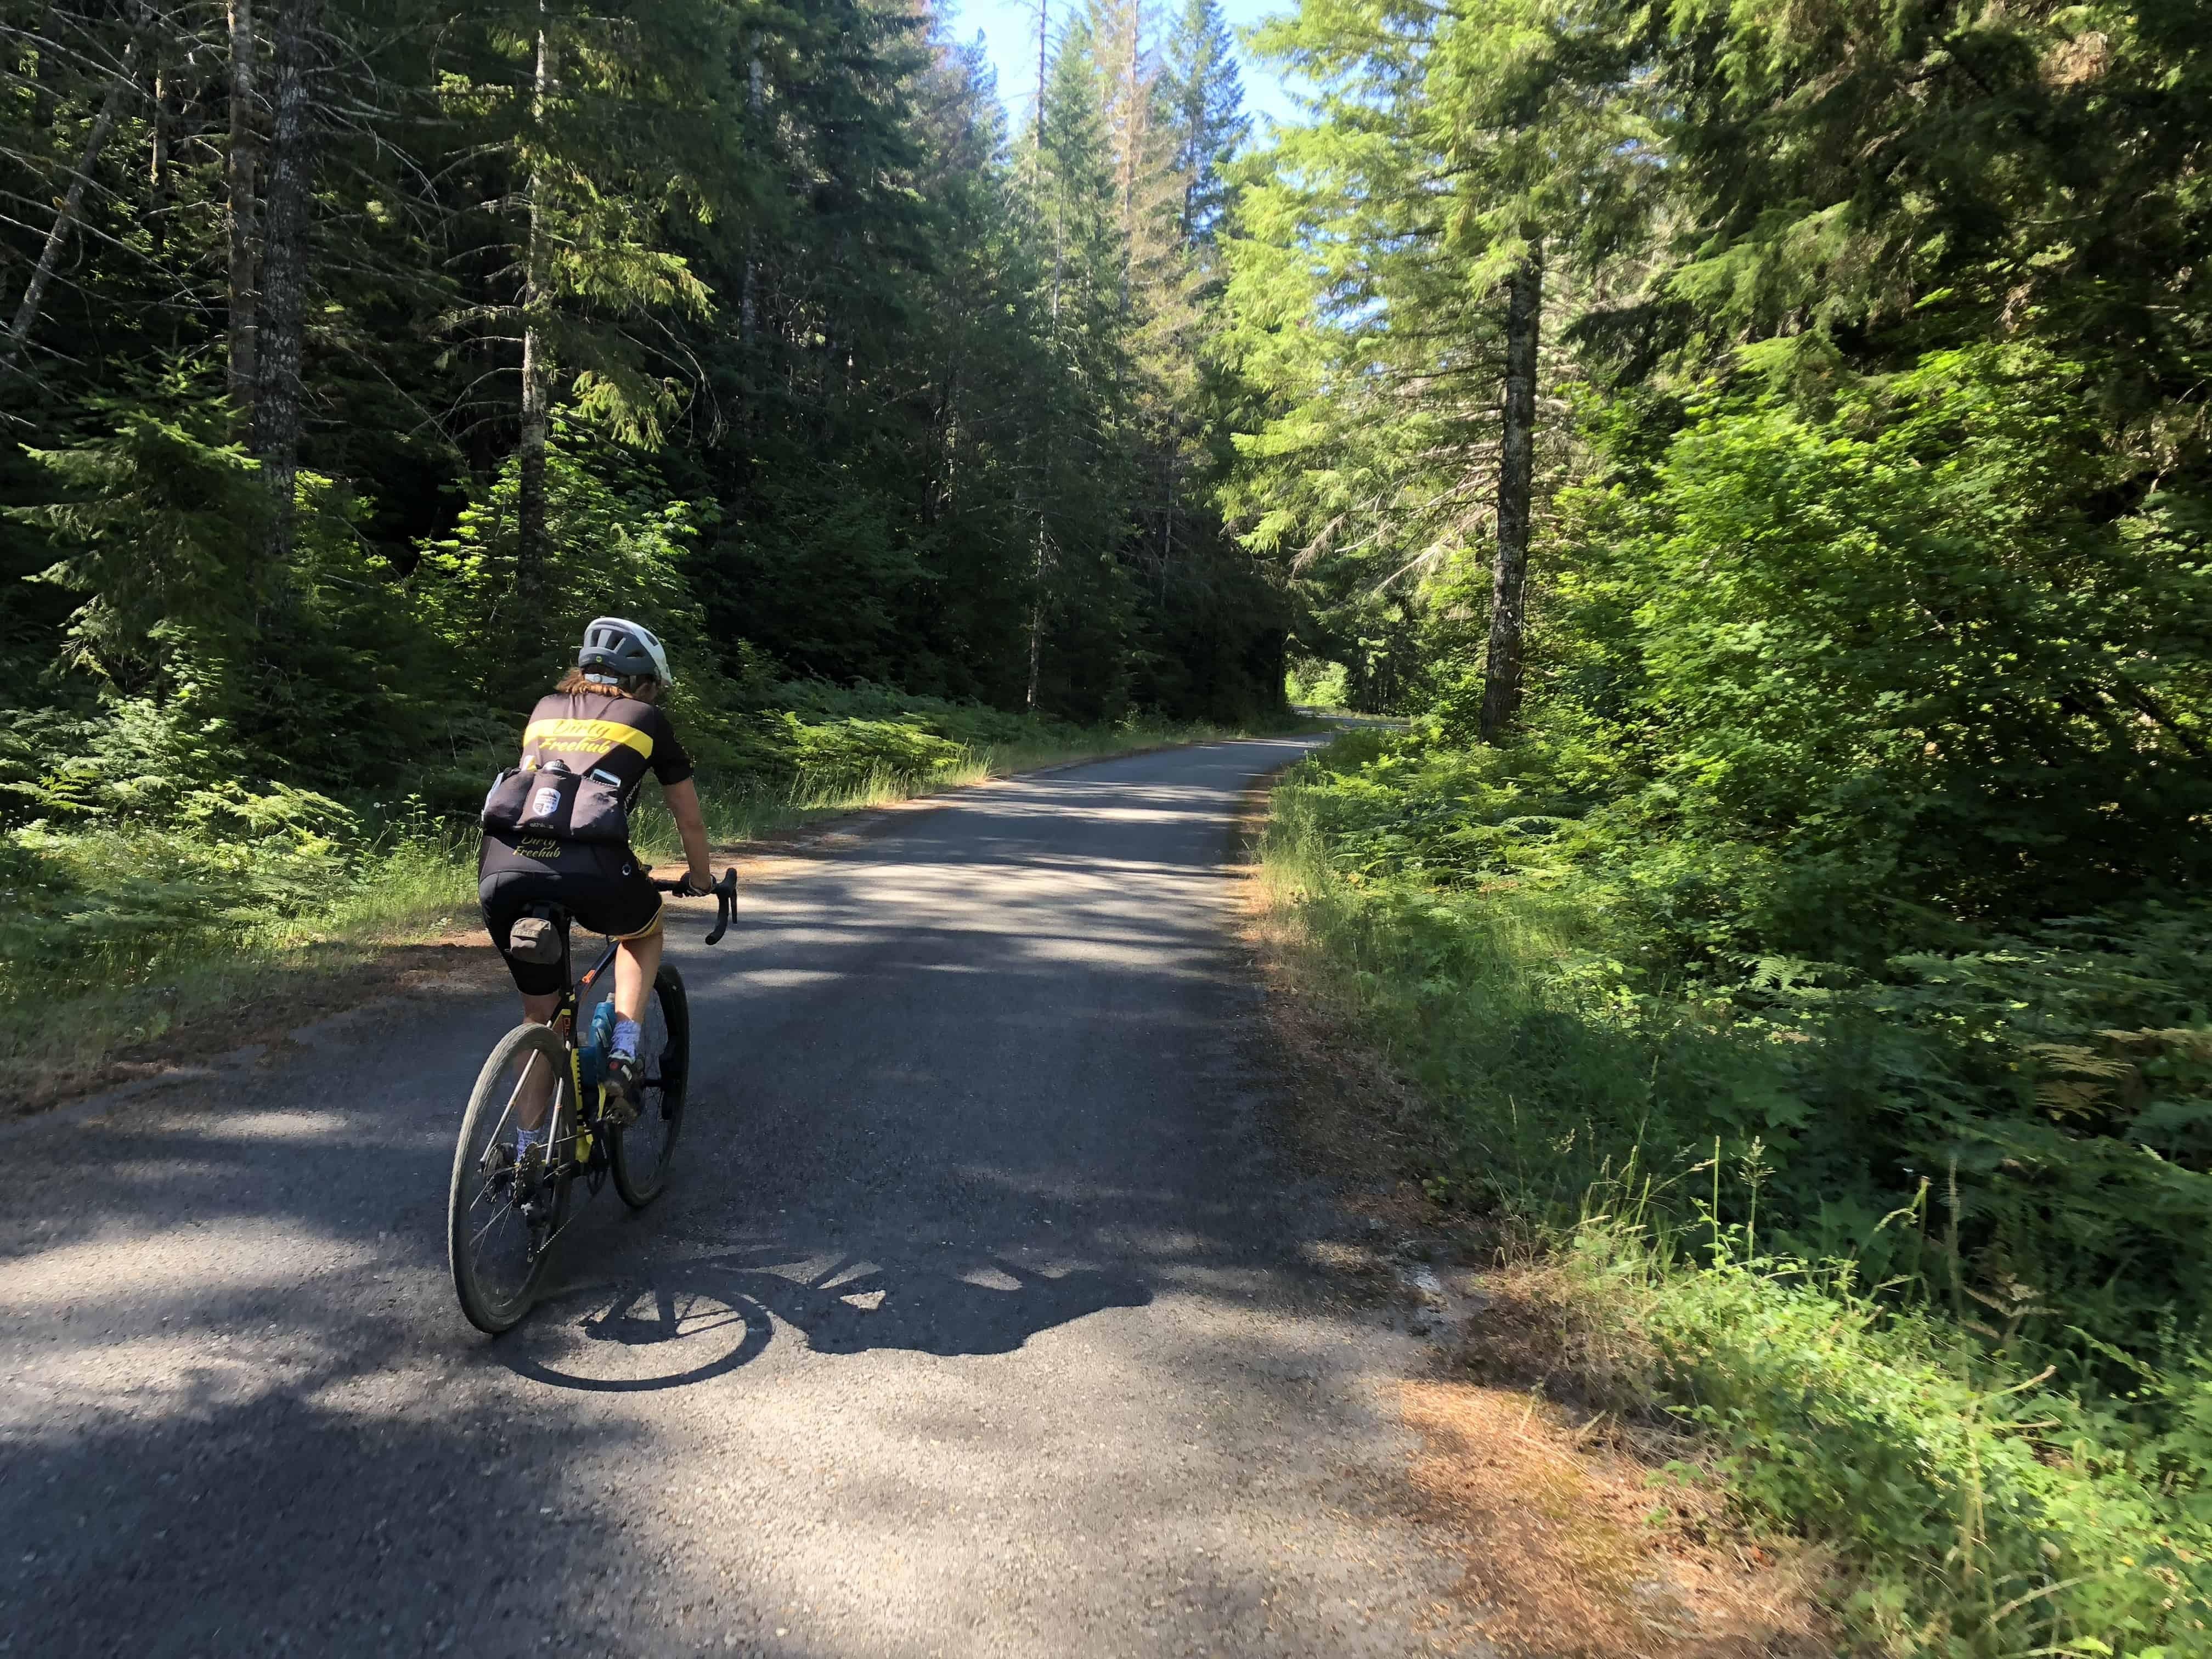 Cyclist on Upper Blowout Road, Willamette National Forest